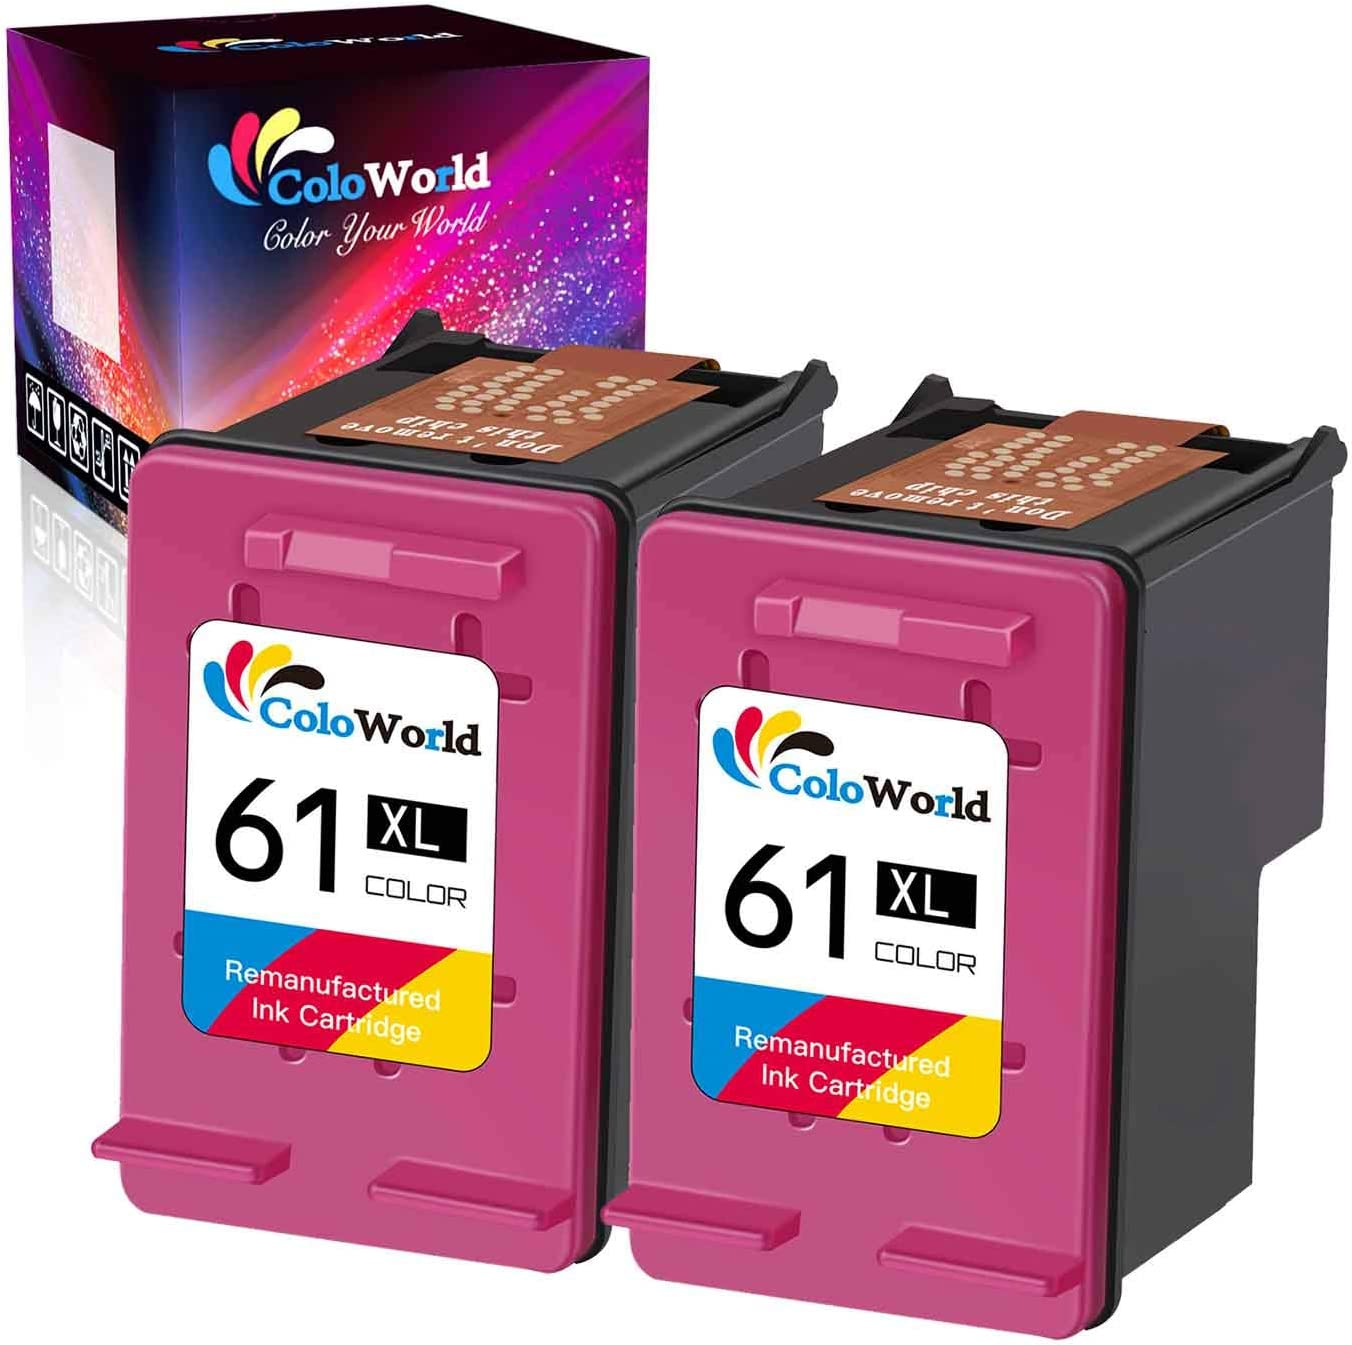 ColoWorld Remanufactured 61XL 61 Ink Cartridge Replacement for HP 61 61XL 61 XL Used in HP Envy 4500 5530 4501 4502 OfficeJet 2620 2622 Deskjet 3050A 3060 3000 3054 3050 1051 Printer (2 Color)